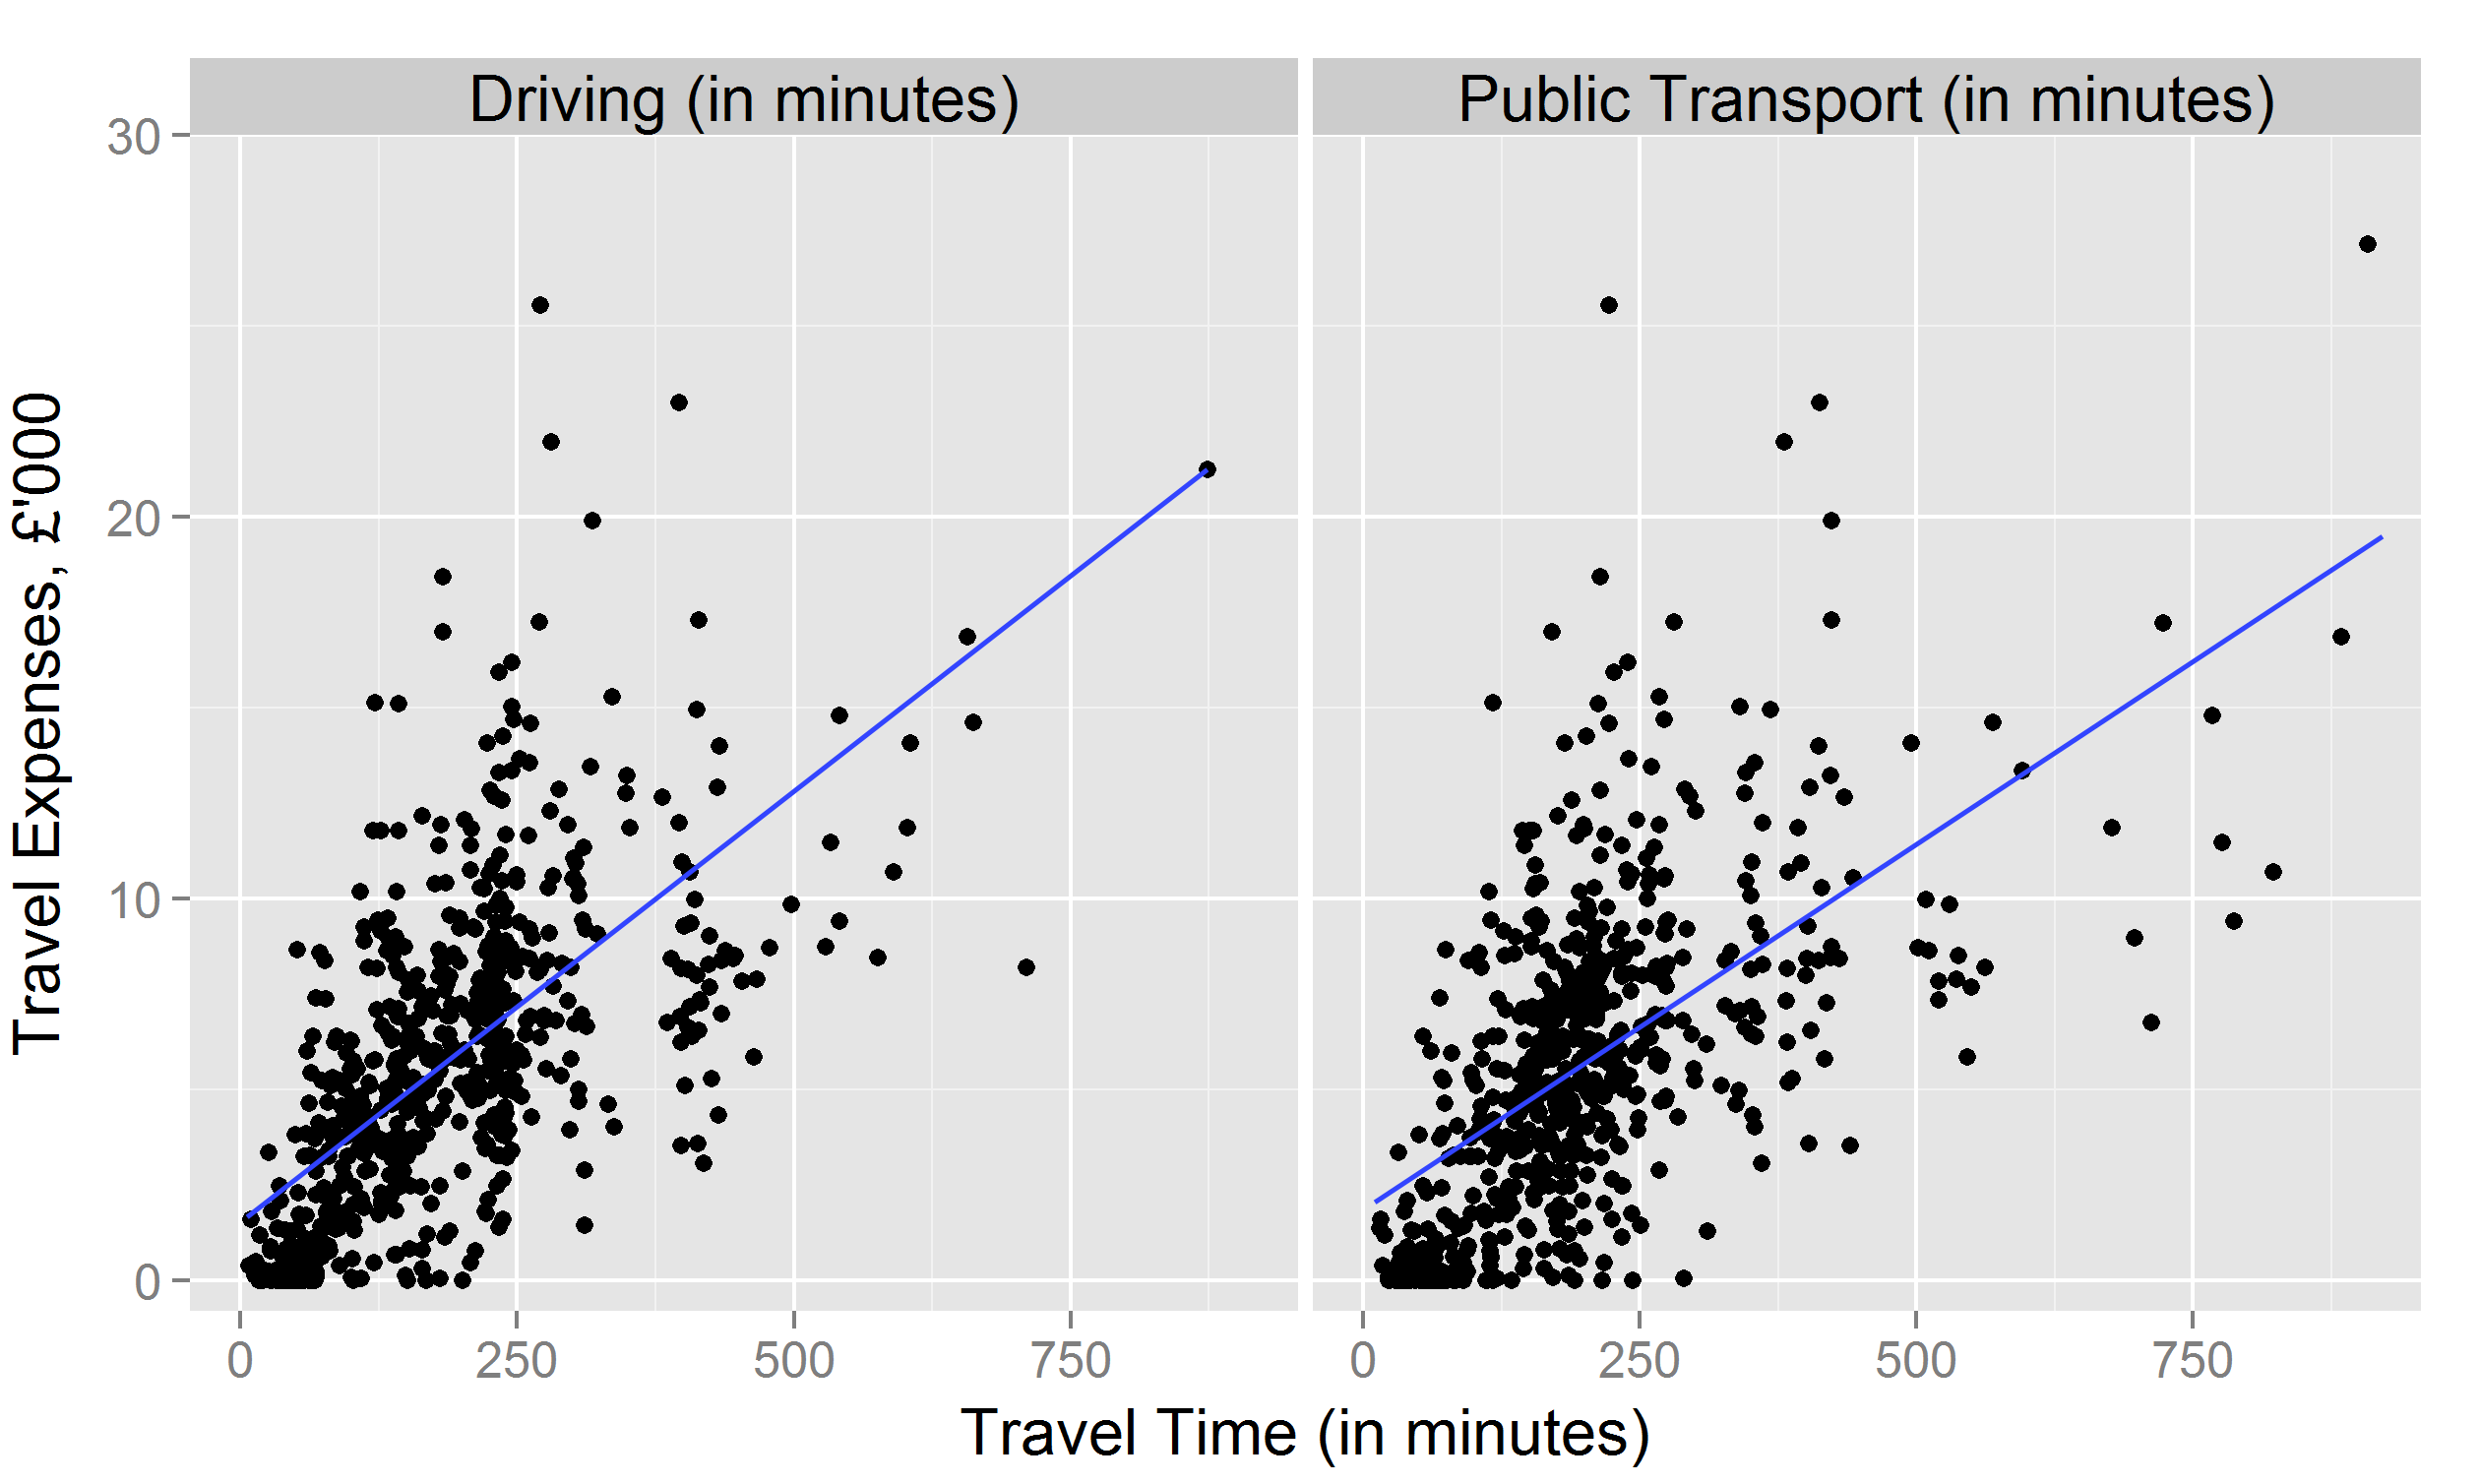 Graph 4: Travel expenses claimed by each MP (in £'000), against time it takes to drive and take public transport between Westminster and MP's constituency. Blue lines represent linear regres-sions line.